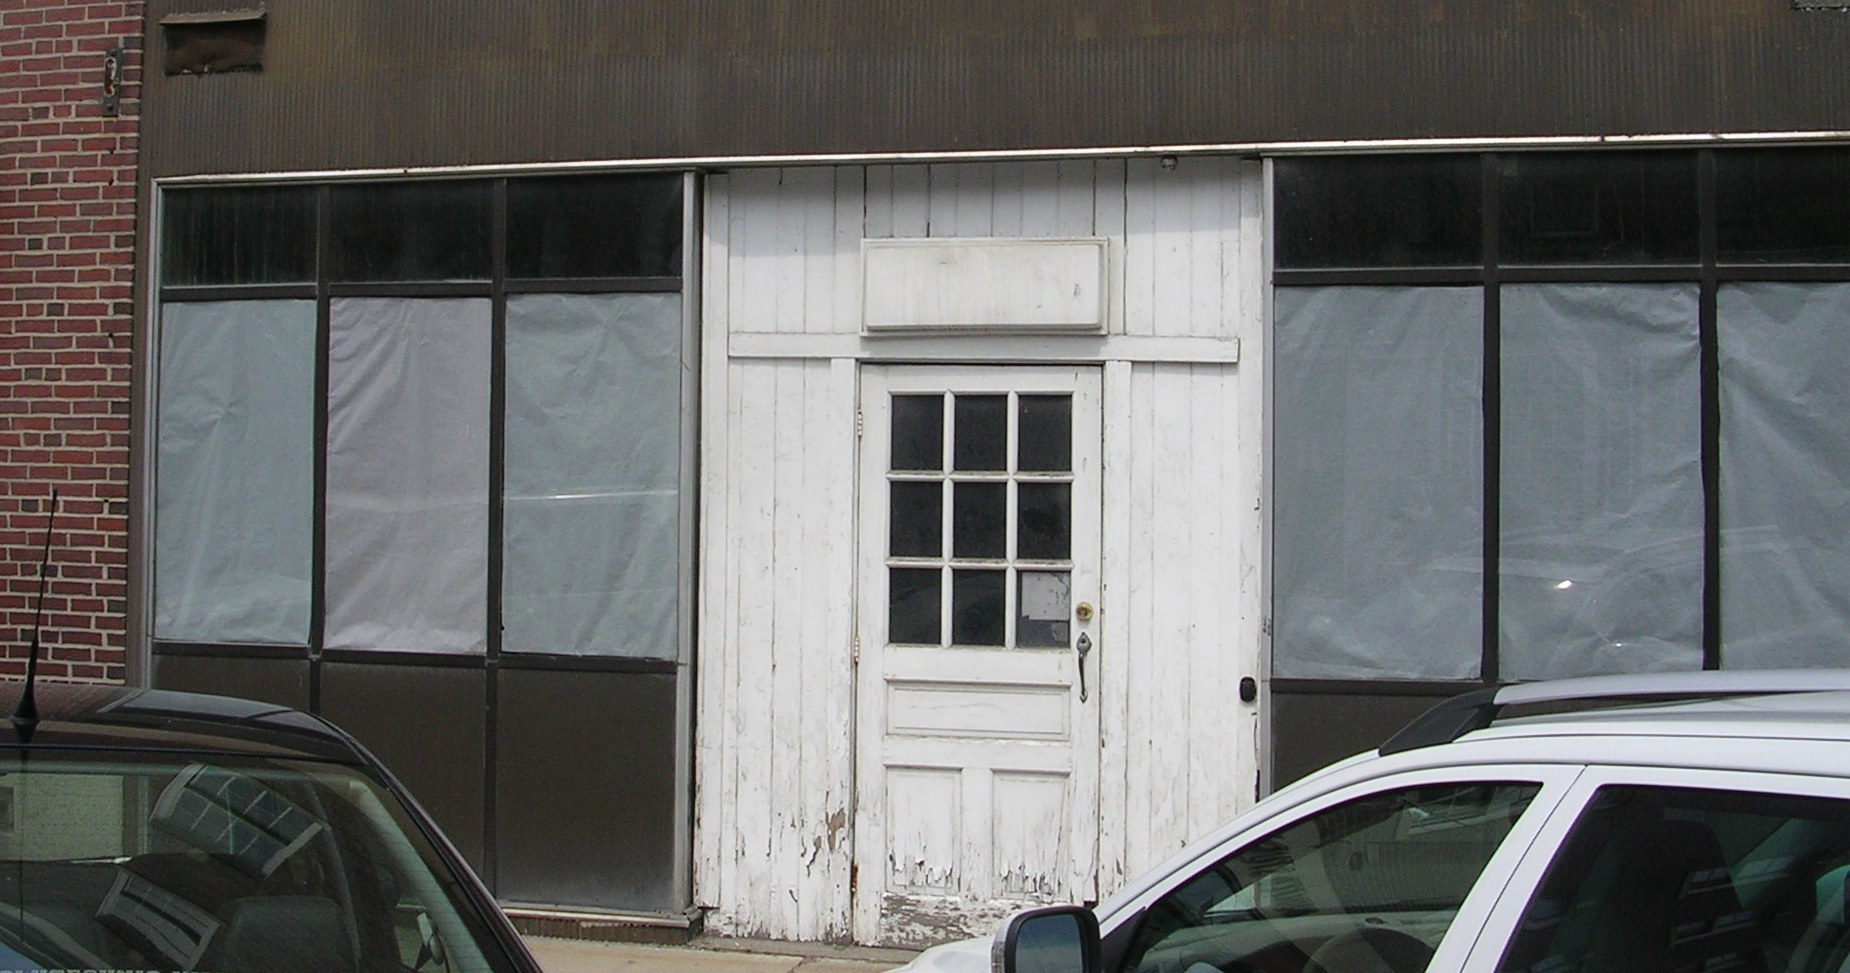 The Windham   Coffee Shop facade as it was   'remuddled' sometime after 1966 with plywood, aluminum and plate glass. The remuddled modernization was removed in 2009, exposing precious few of the original facade architectural elements. Fortunately, enough detail was uncovered to allow the original facade to be accurately replicated. See below.